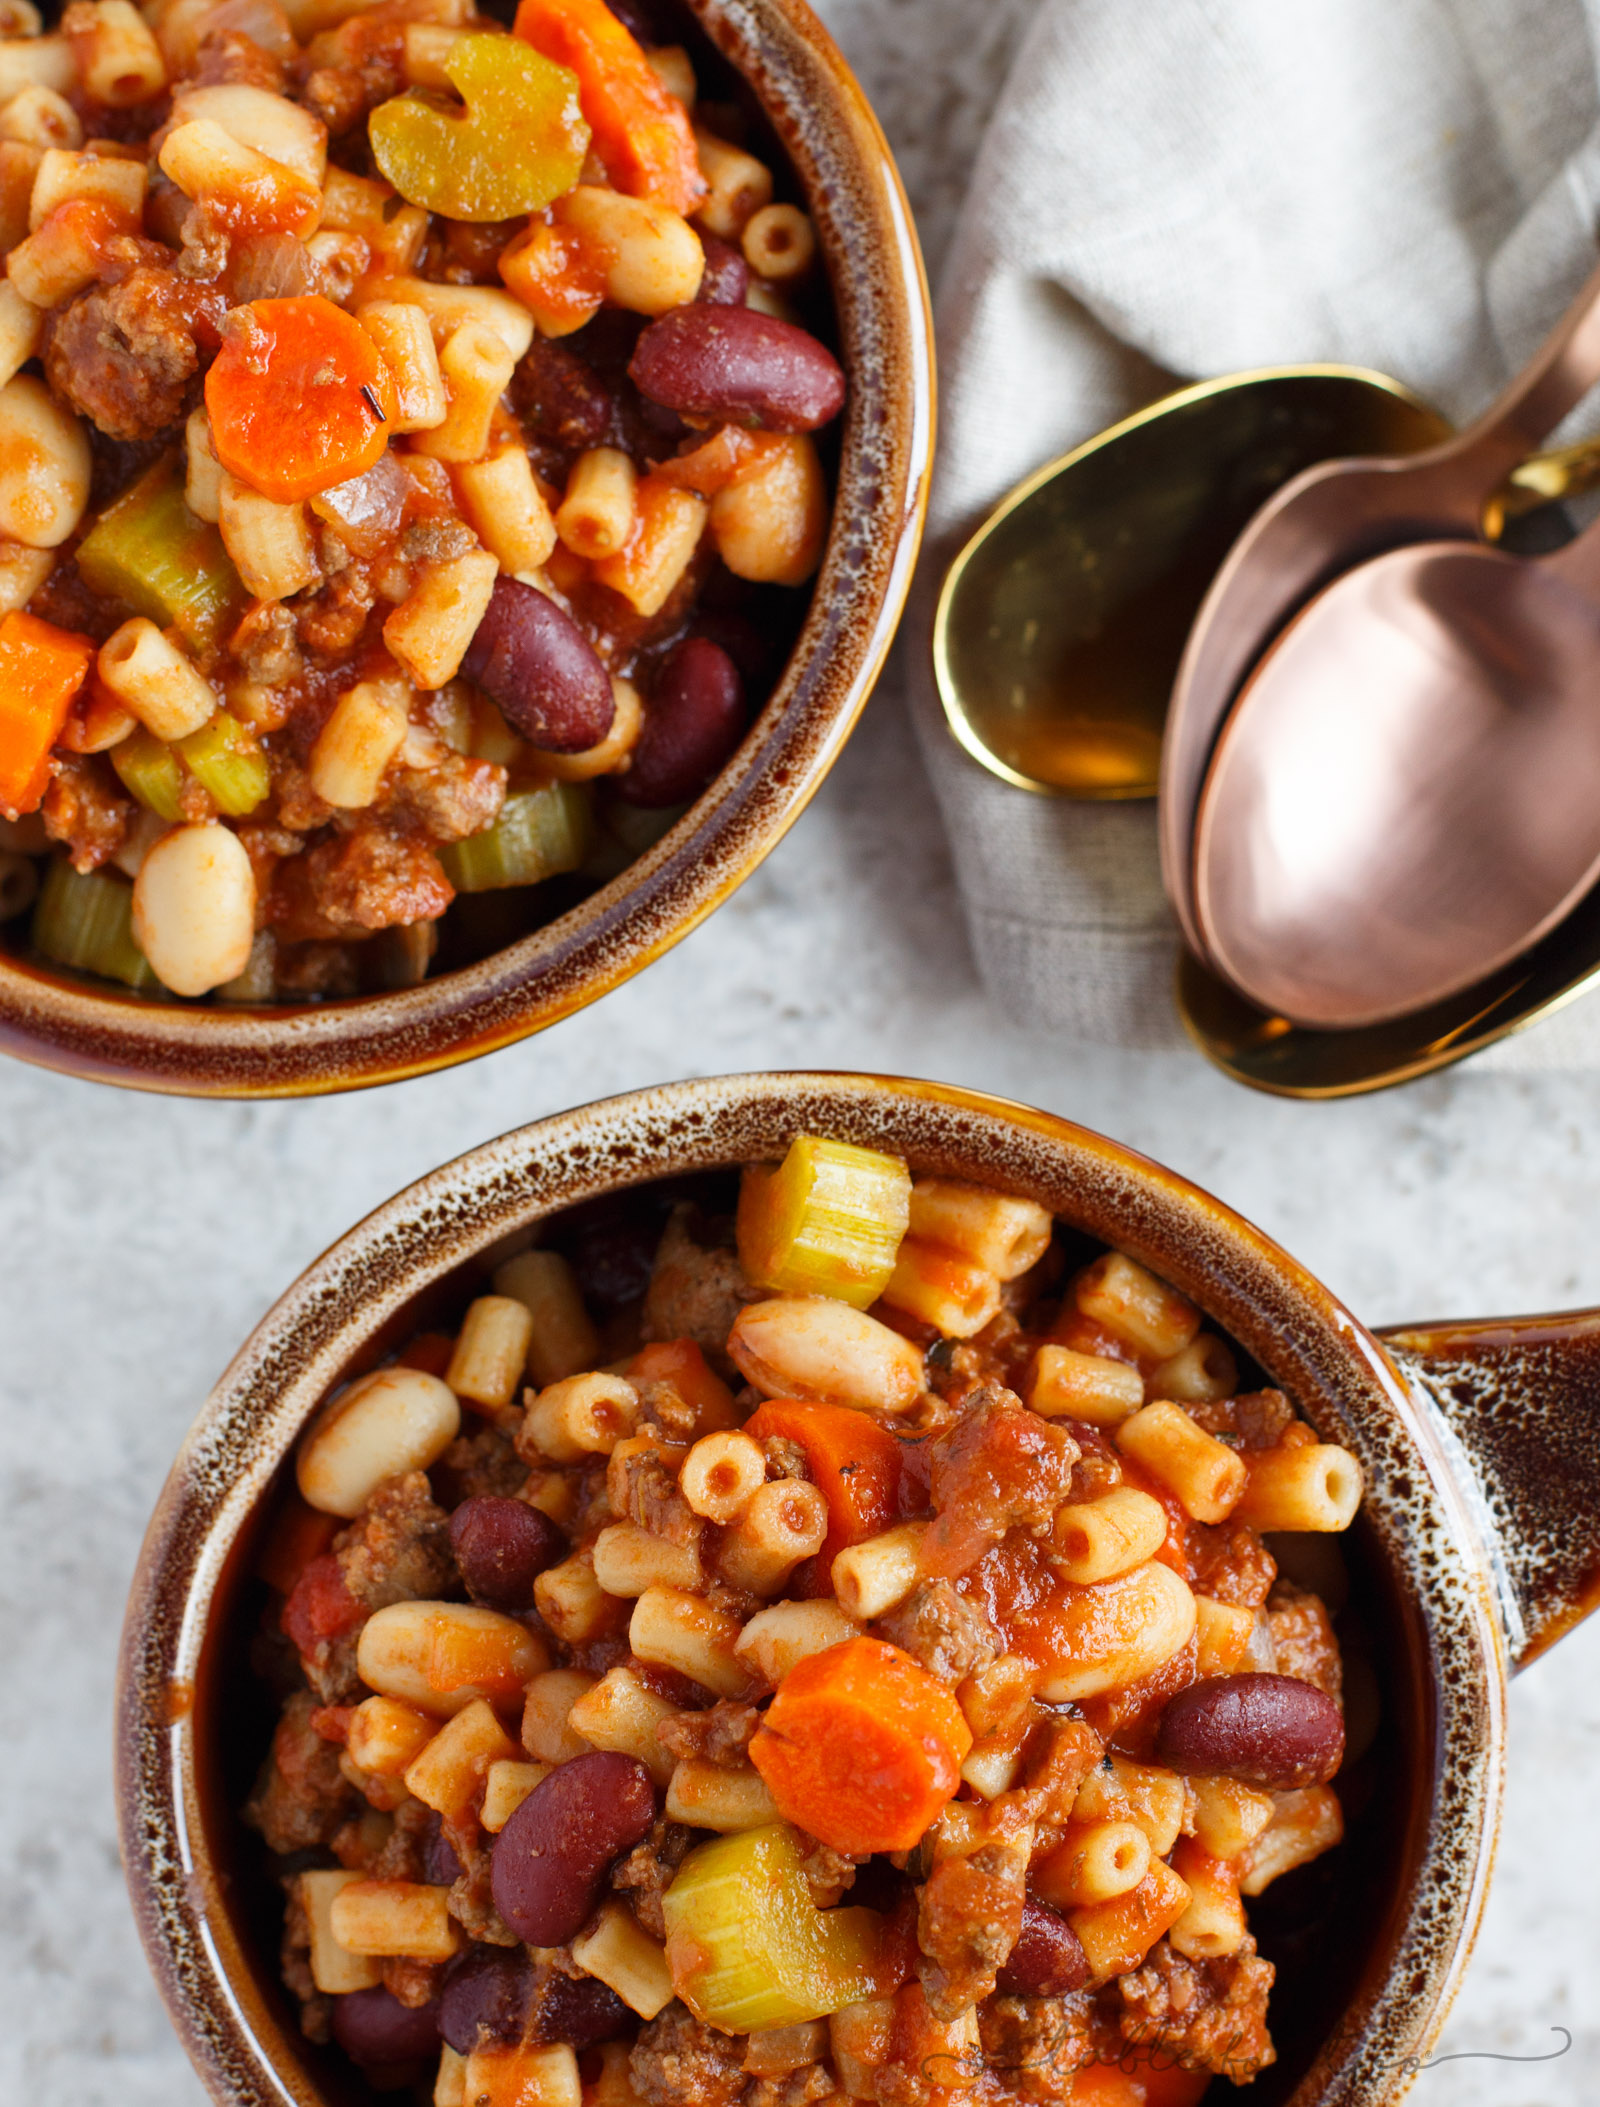 A thick and hearty slow cooker meal. This slow cooker pasta fagioli is full of hearty beef, beans, veggies, and pasta. Makes for great comfort food in the cooler months or for busy weeks that leftovers won't get boring!